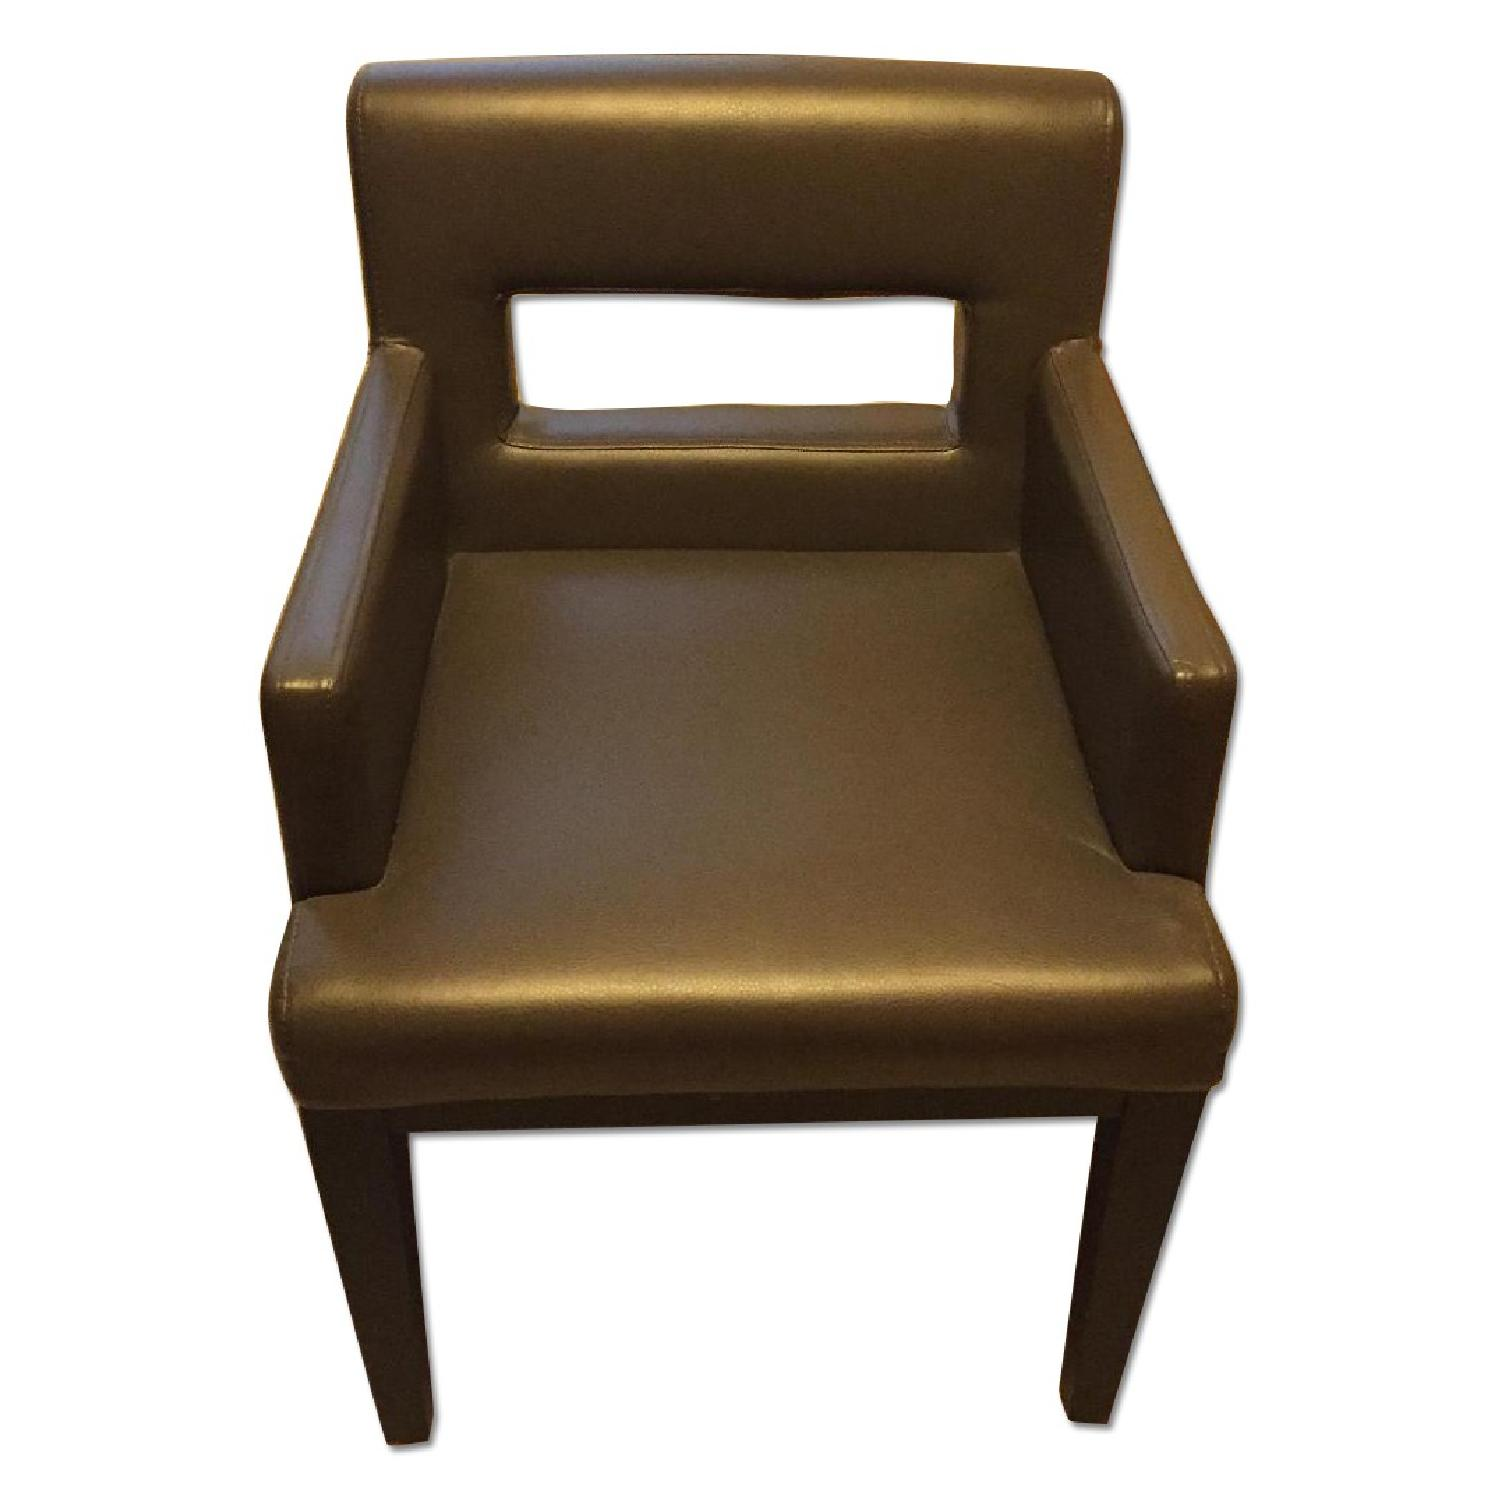 Home Goods Jason Furniture Upright Chair - image-0